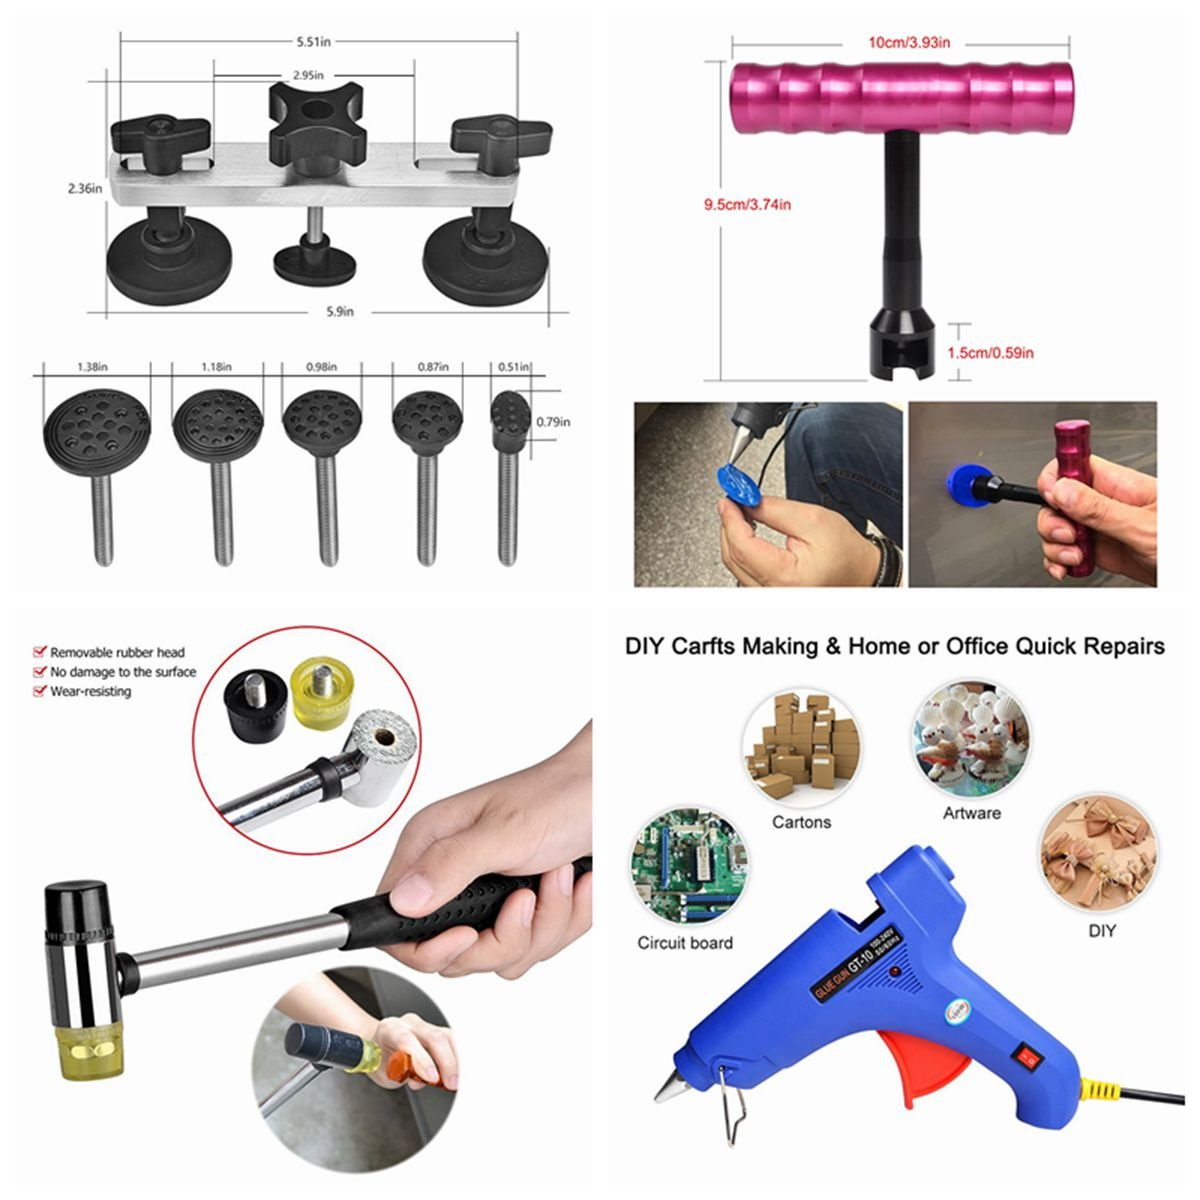 Super PDR DIY Car Auto Body Dent Removal Repair Tools Kits Car Scratch Remover Pen Dent Board Slide Hammer Working Gloves Glue Puller Sets Black Tool Box by Super PDR (Image #5)